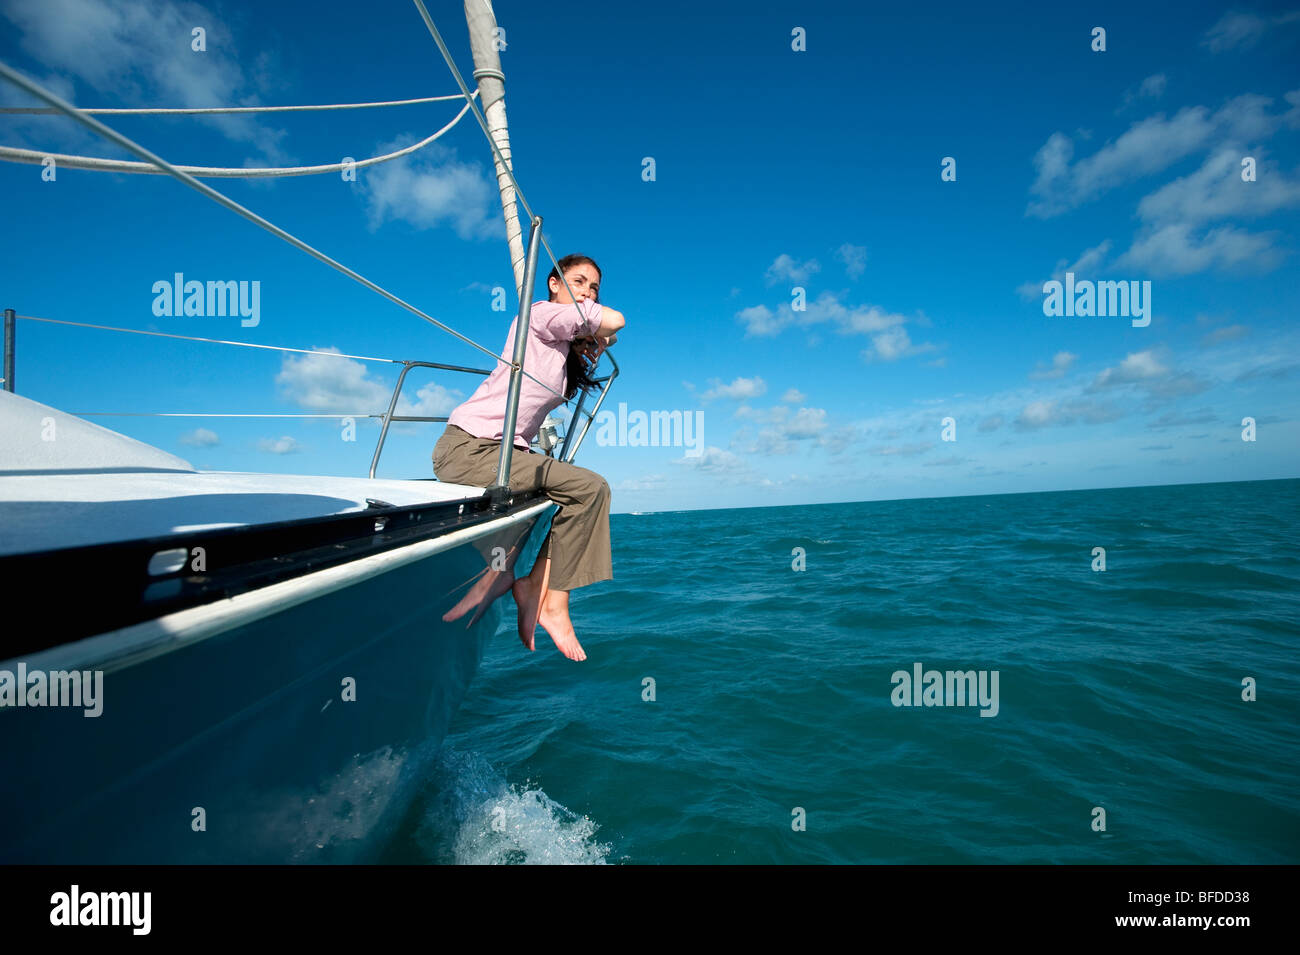 A woman sits on the bow of a boat off of Florida. - Stock Image